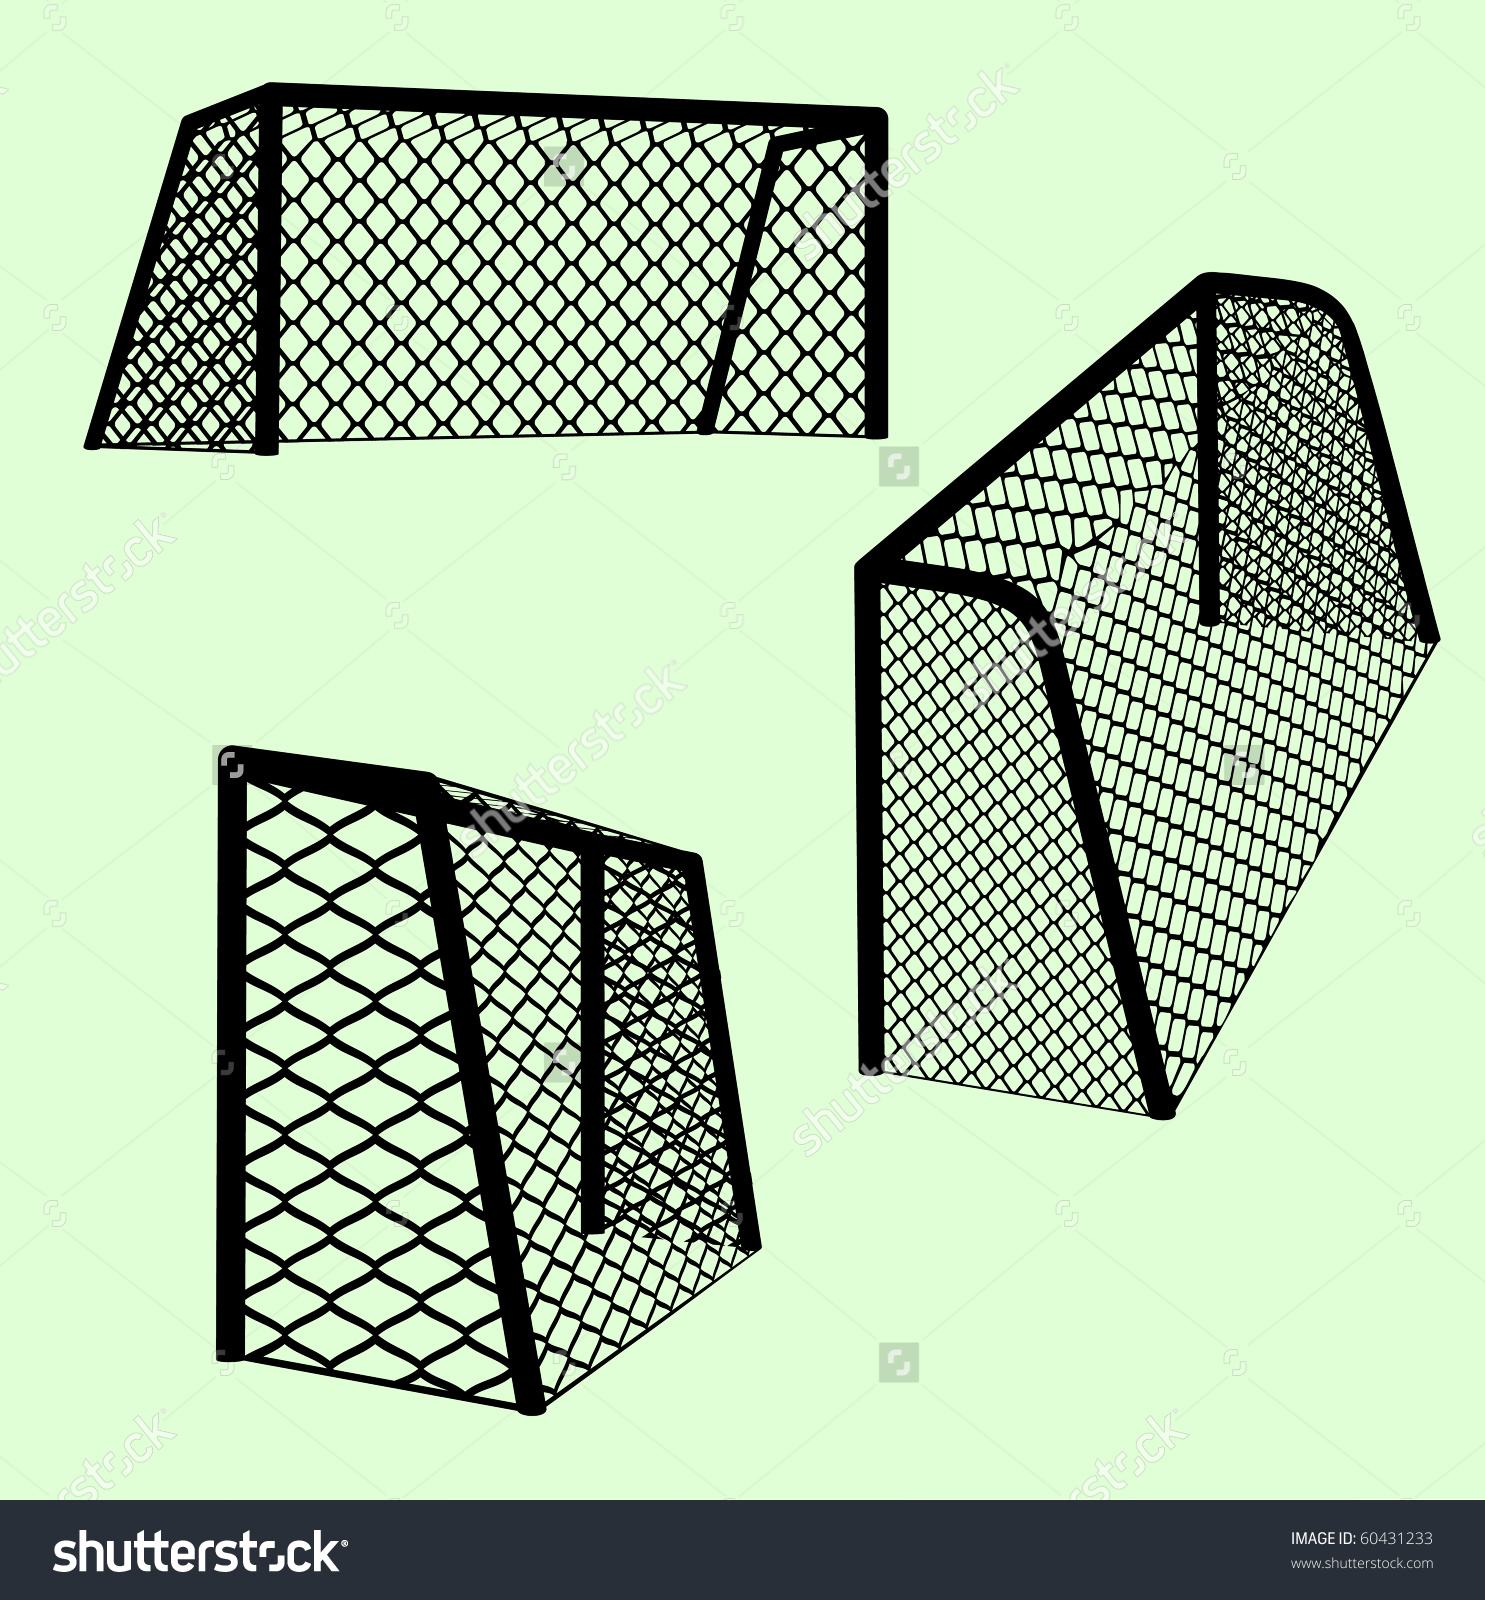 1485x1600 Collection Of Soccer Goal Side View Drawing High Quality